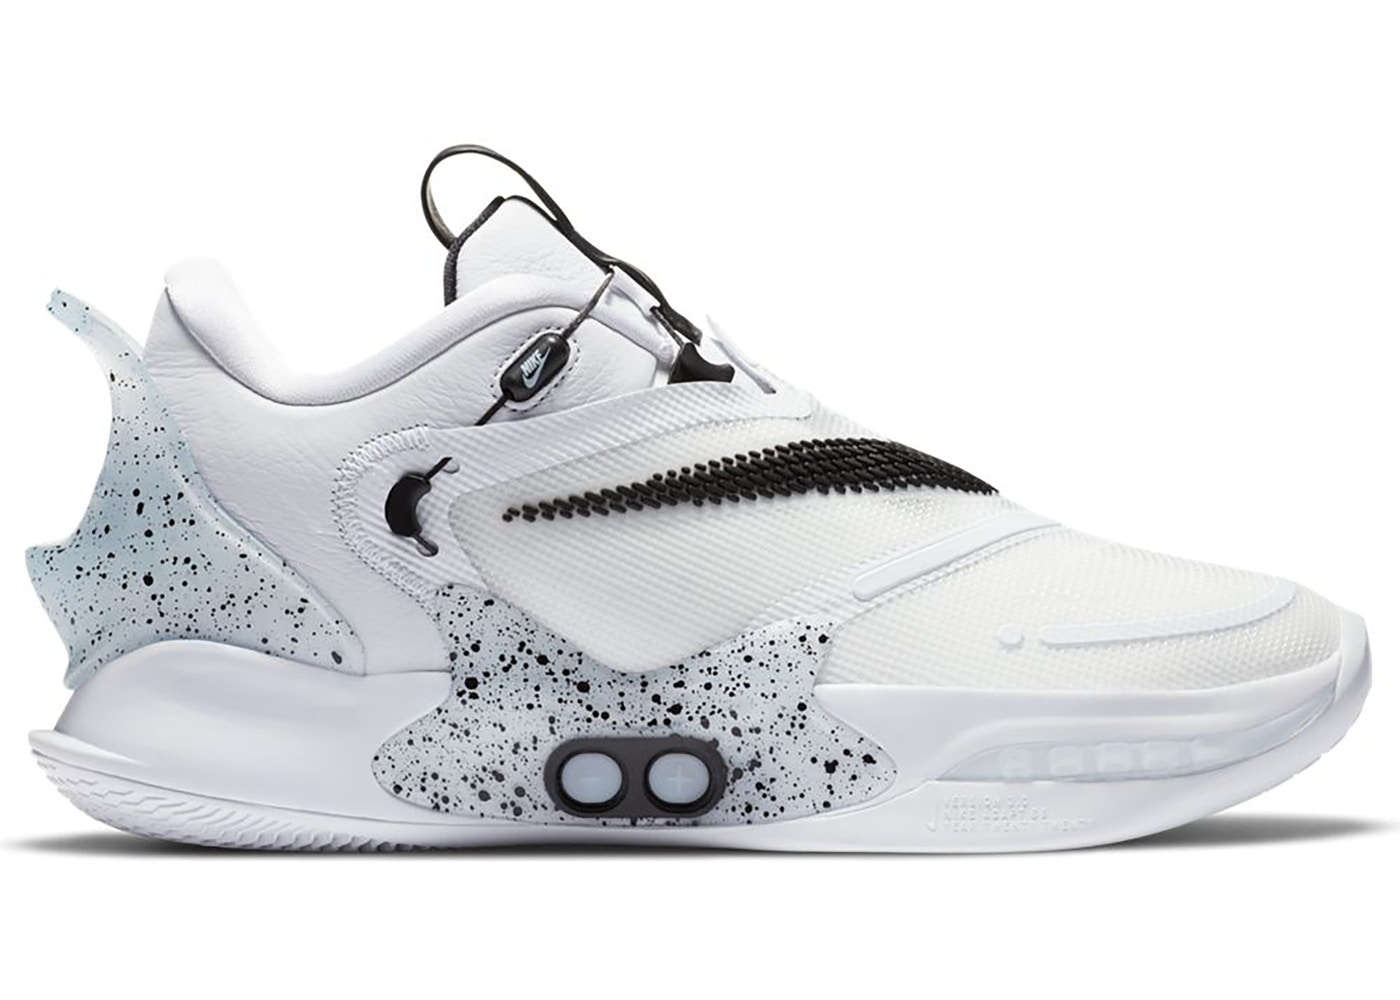 Nike Adapt Bb 2 0 Oreo Other Countries Charger Cv2441 101